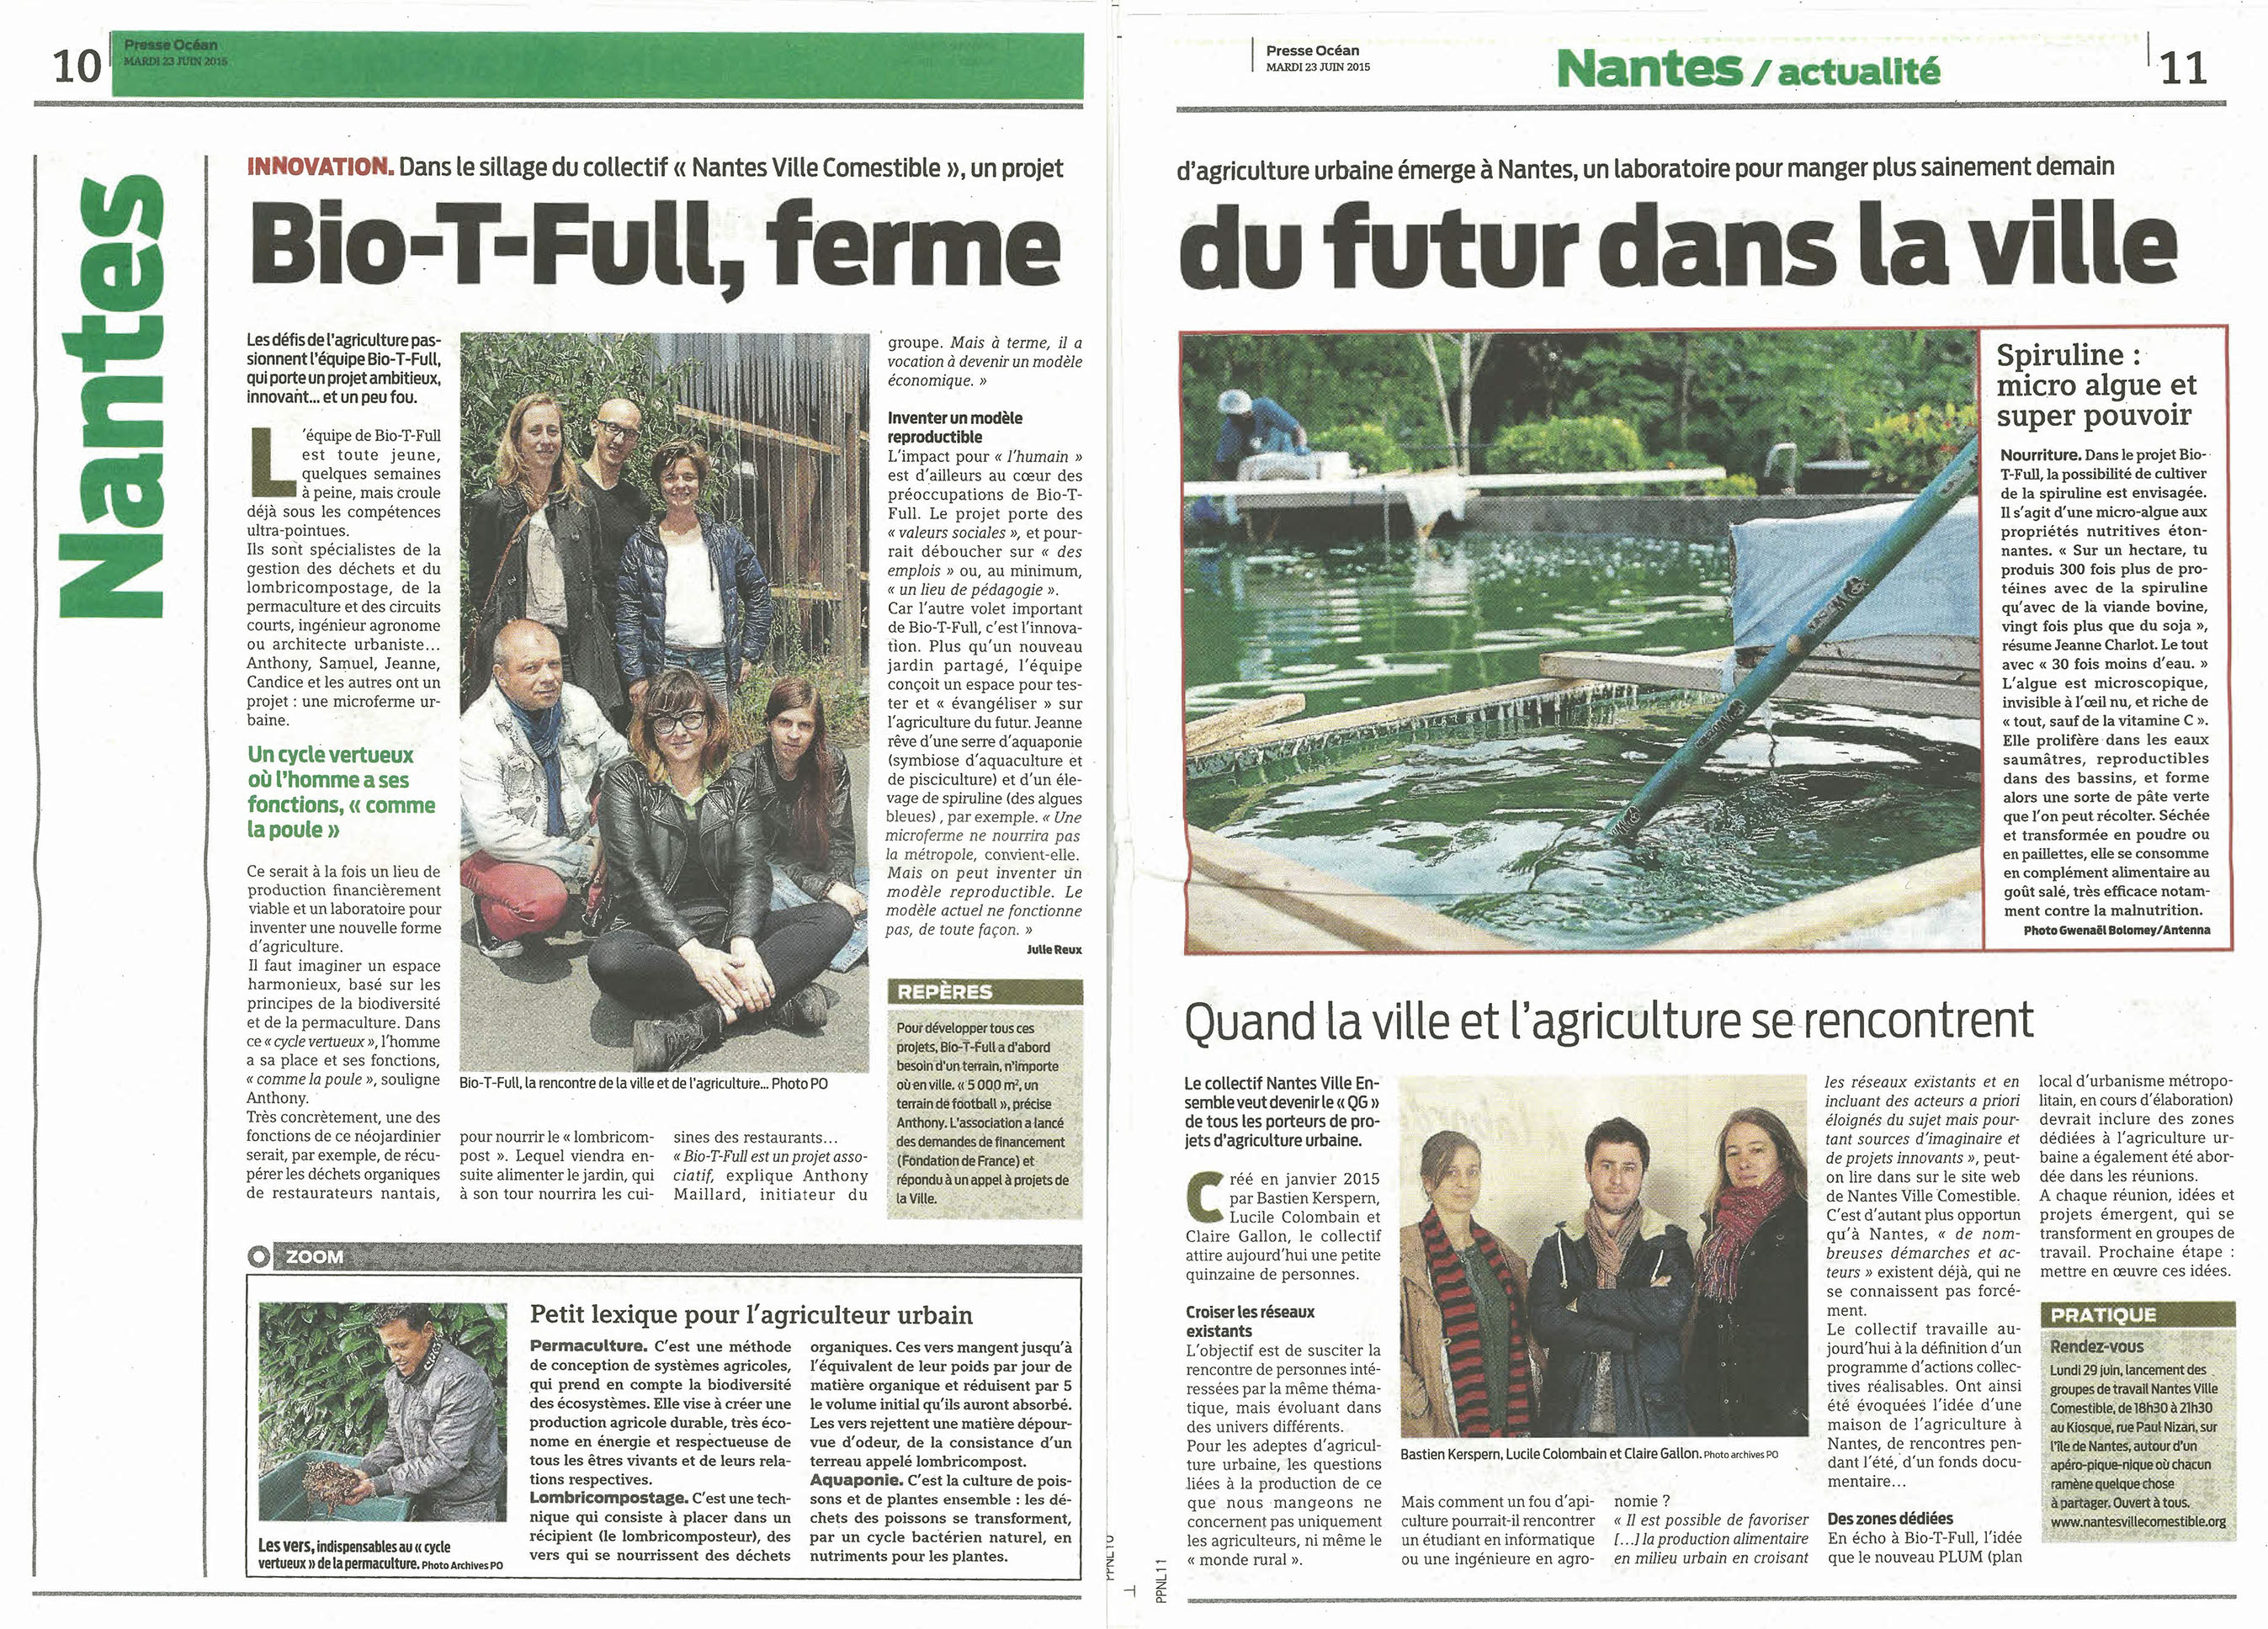 Bio-T-Full passe dans le journal local !